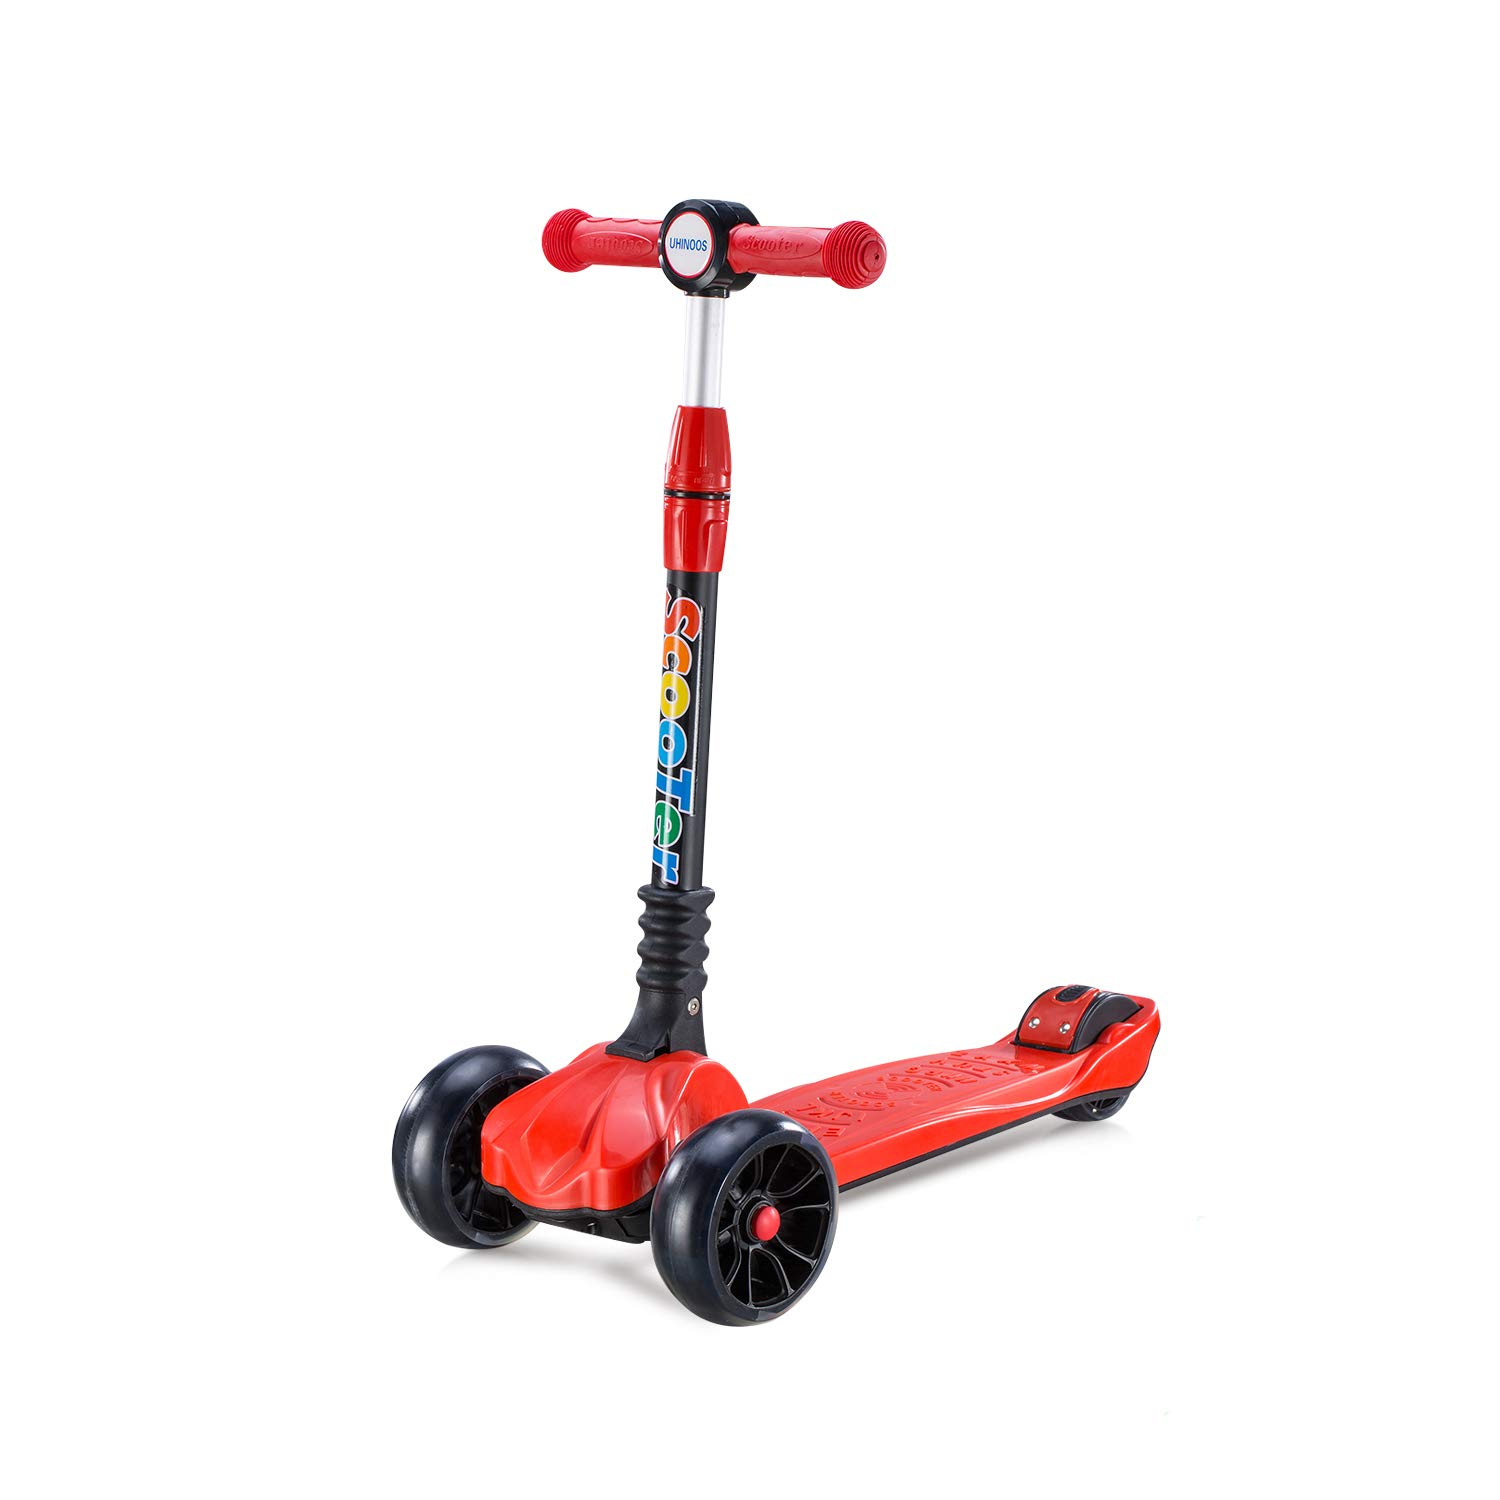 Scooters for Kids-4 Adjustable Height 3 Wheels Stable Kick Scooters for kids with Flashing PU Wheels-Foldable and No Assembly Required Mini 3 wheel Kids Scooter for Boys Girls 3-12 Years Old,Red